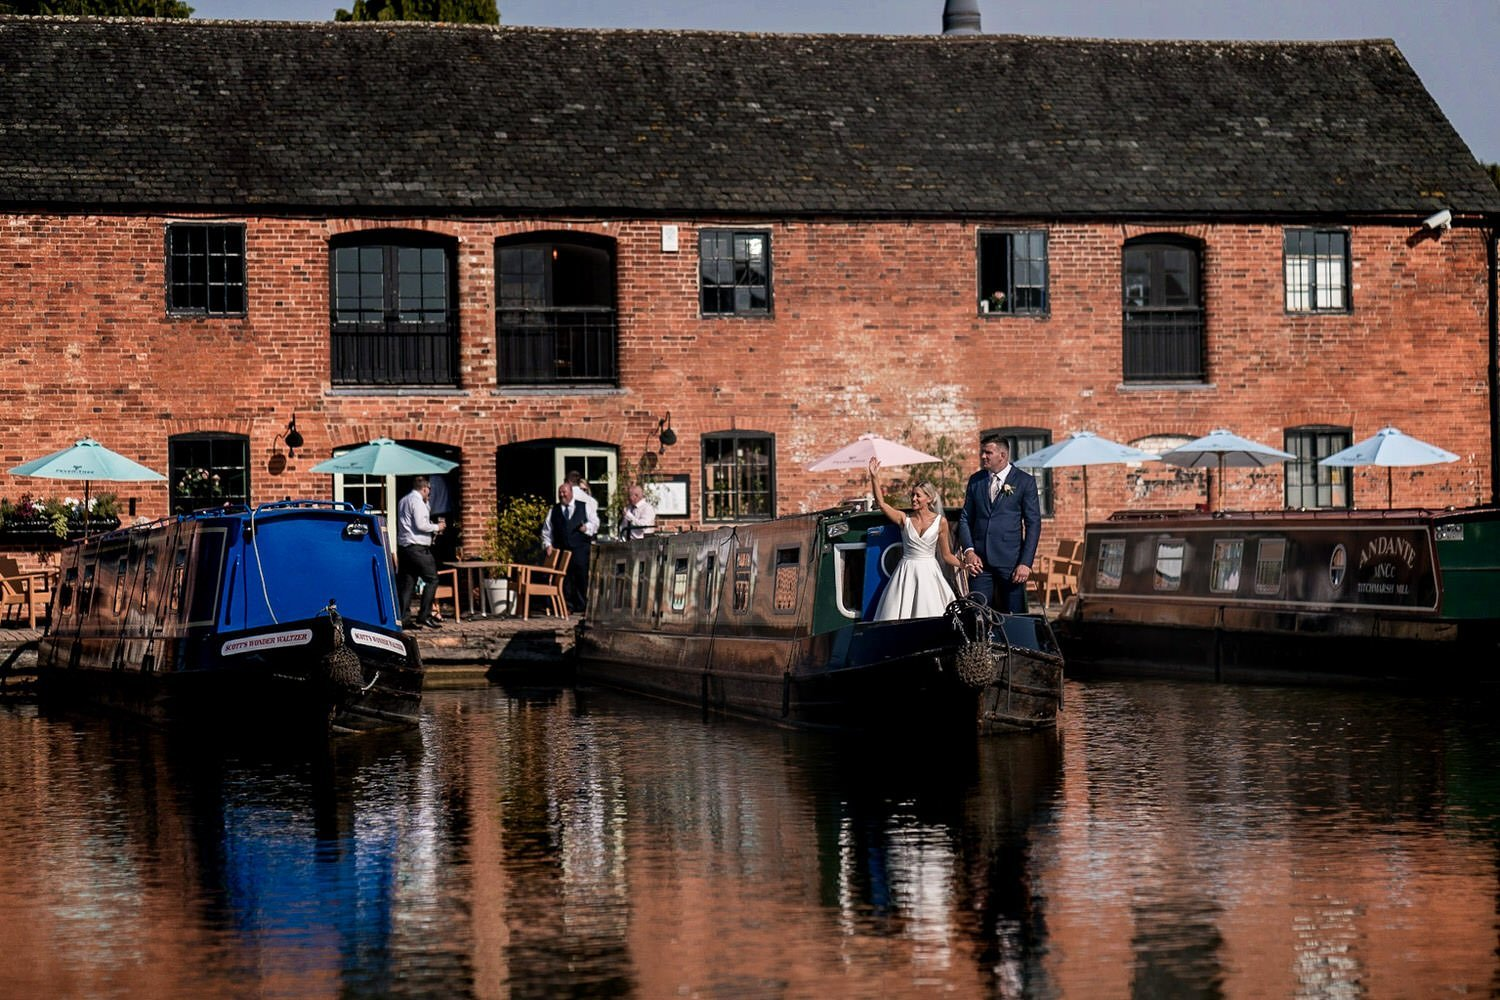 The Waterfront Market Harborough Weddings Photography Bride and Groom on a barge front waving at their family